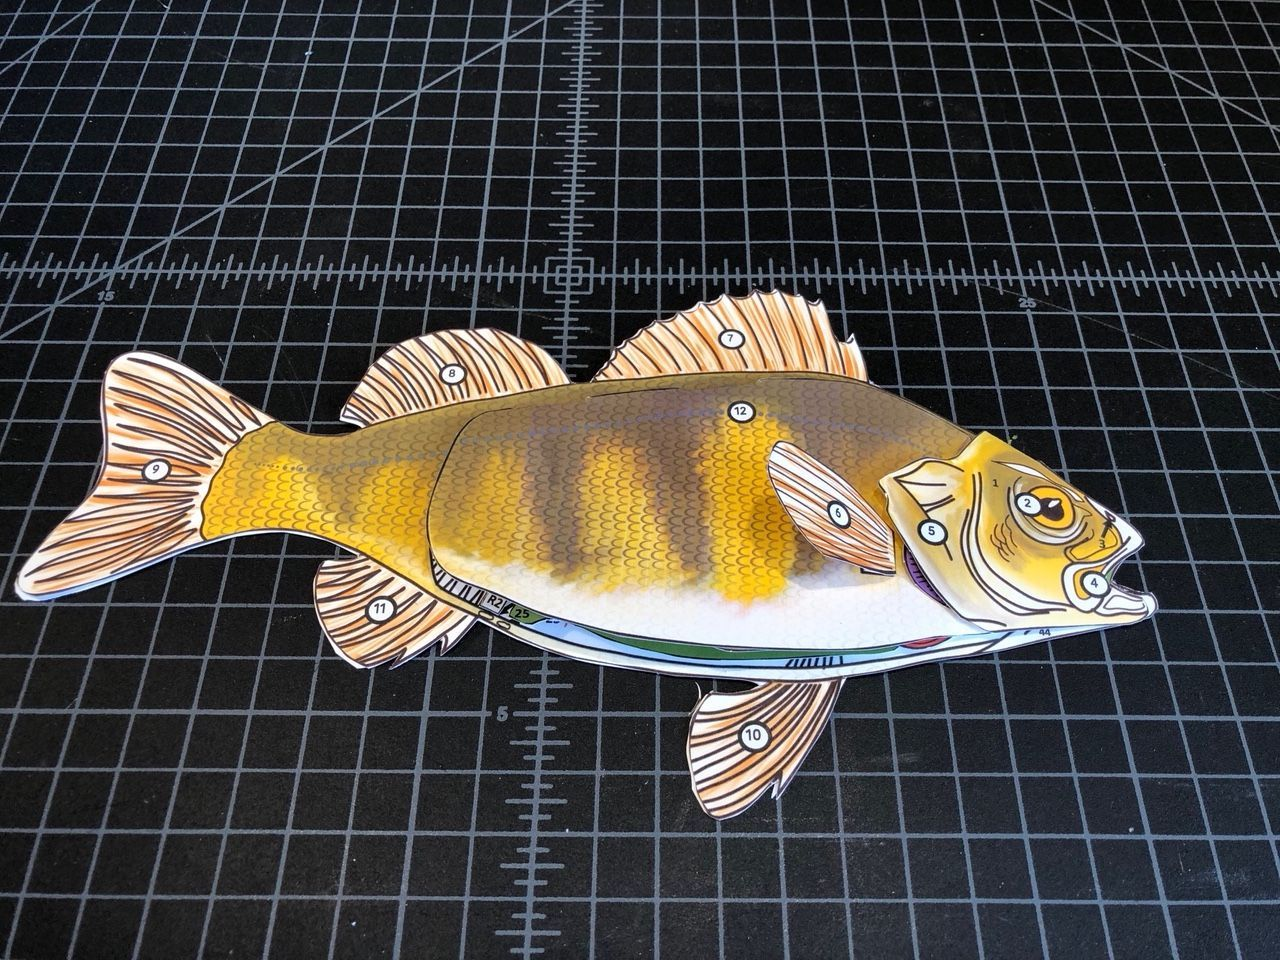 medium resolution of Perch 3-d scienstructable dissection paper fish model. Use as a  cruelty-free exploration